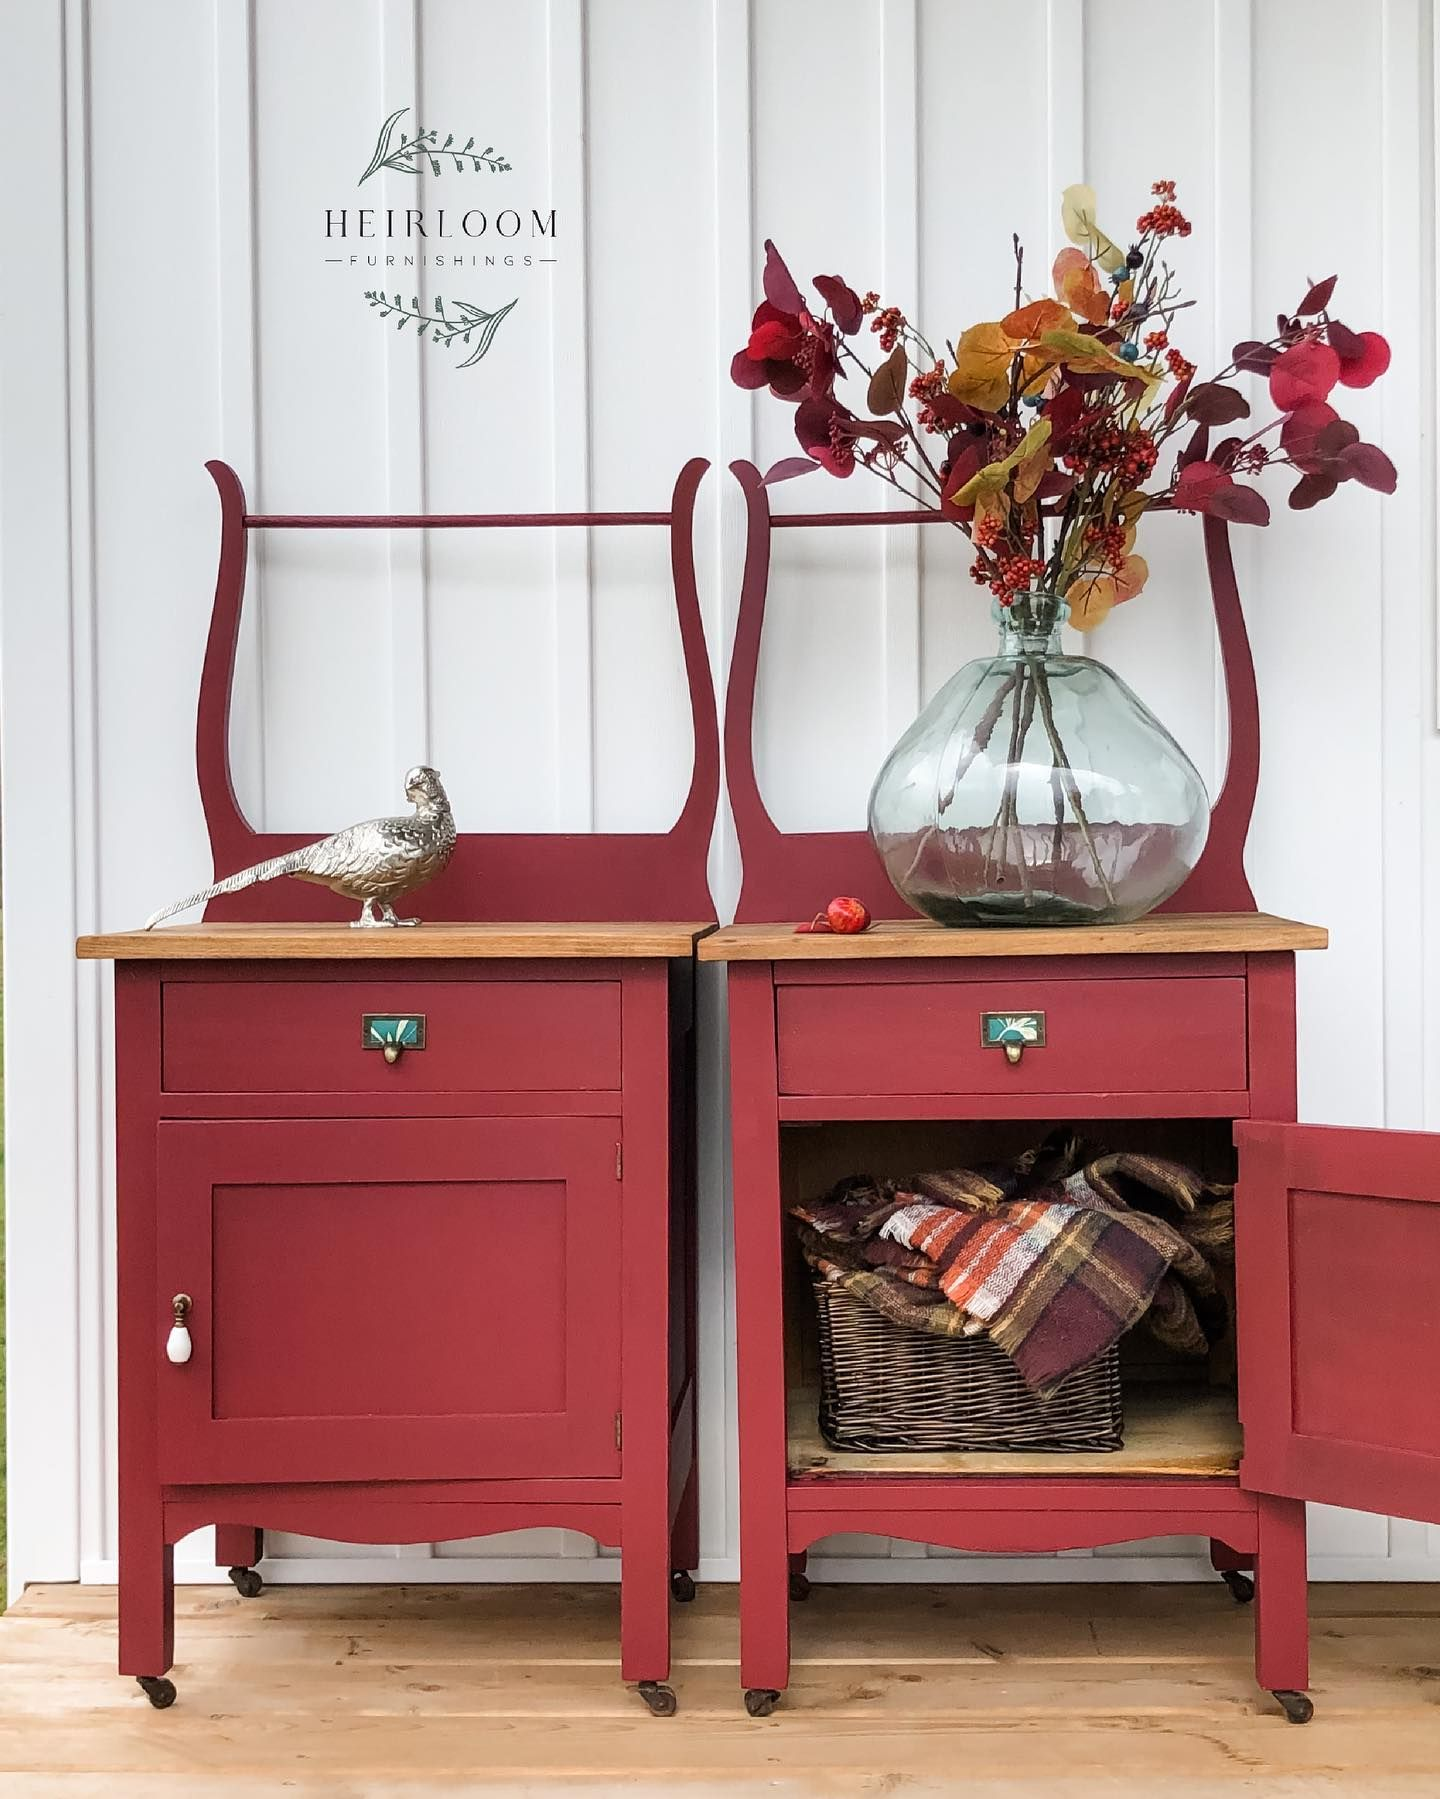 Set of Accent Tables with Storage in Cranberry Sauce